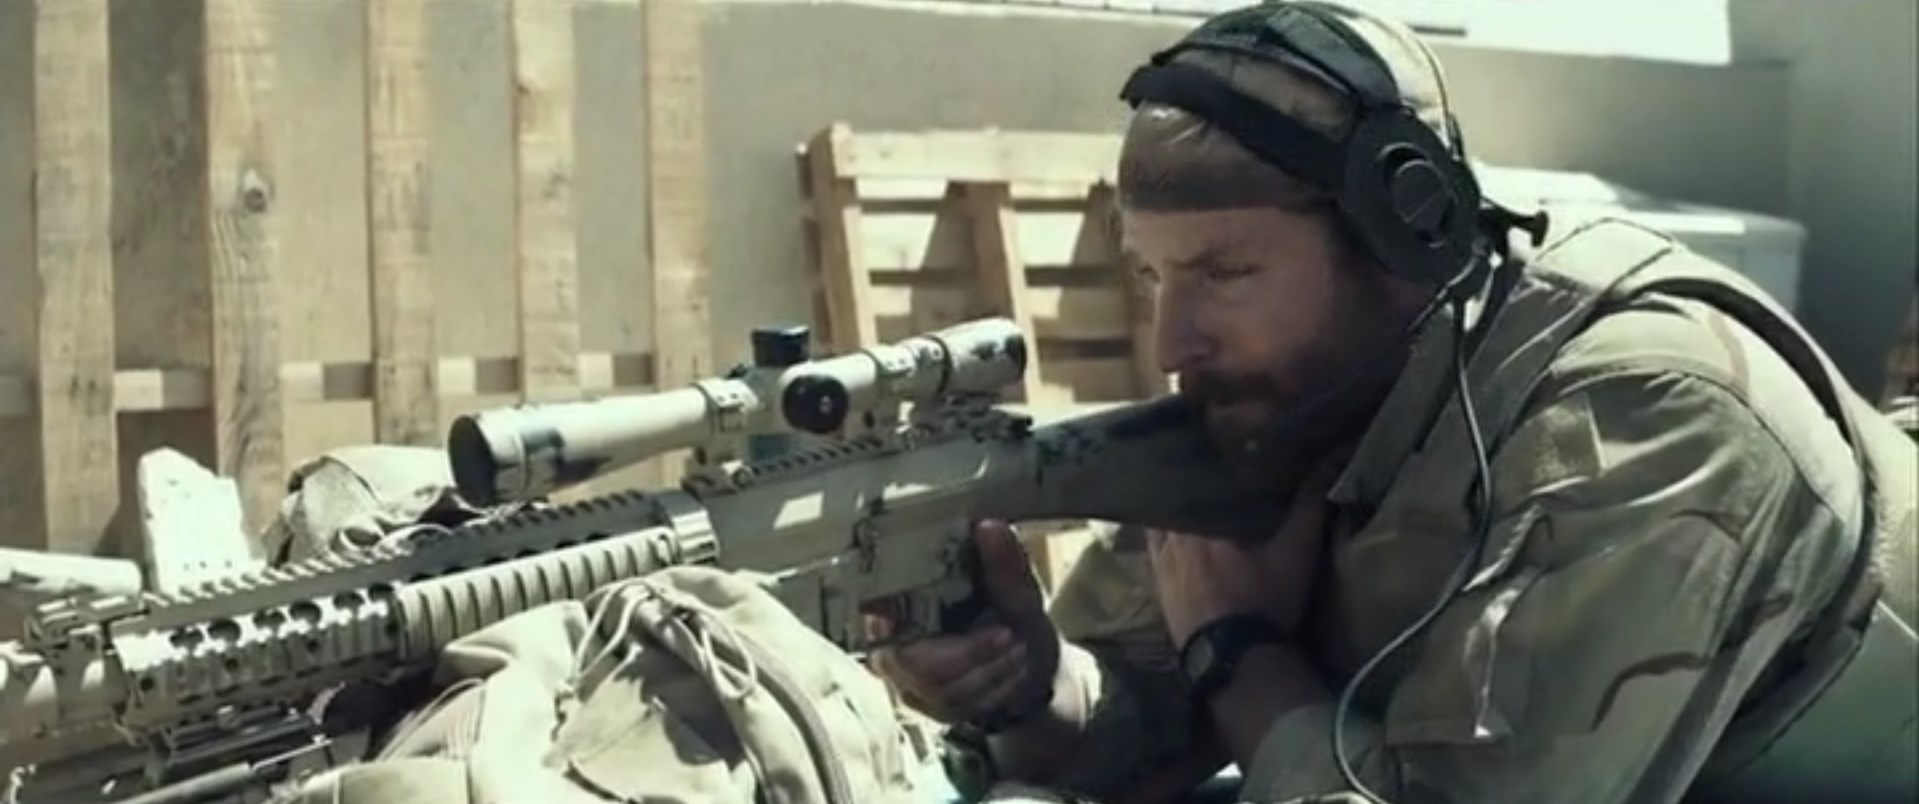 American Sniper Wallpaper HD - WallpaperSafari